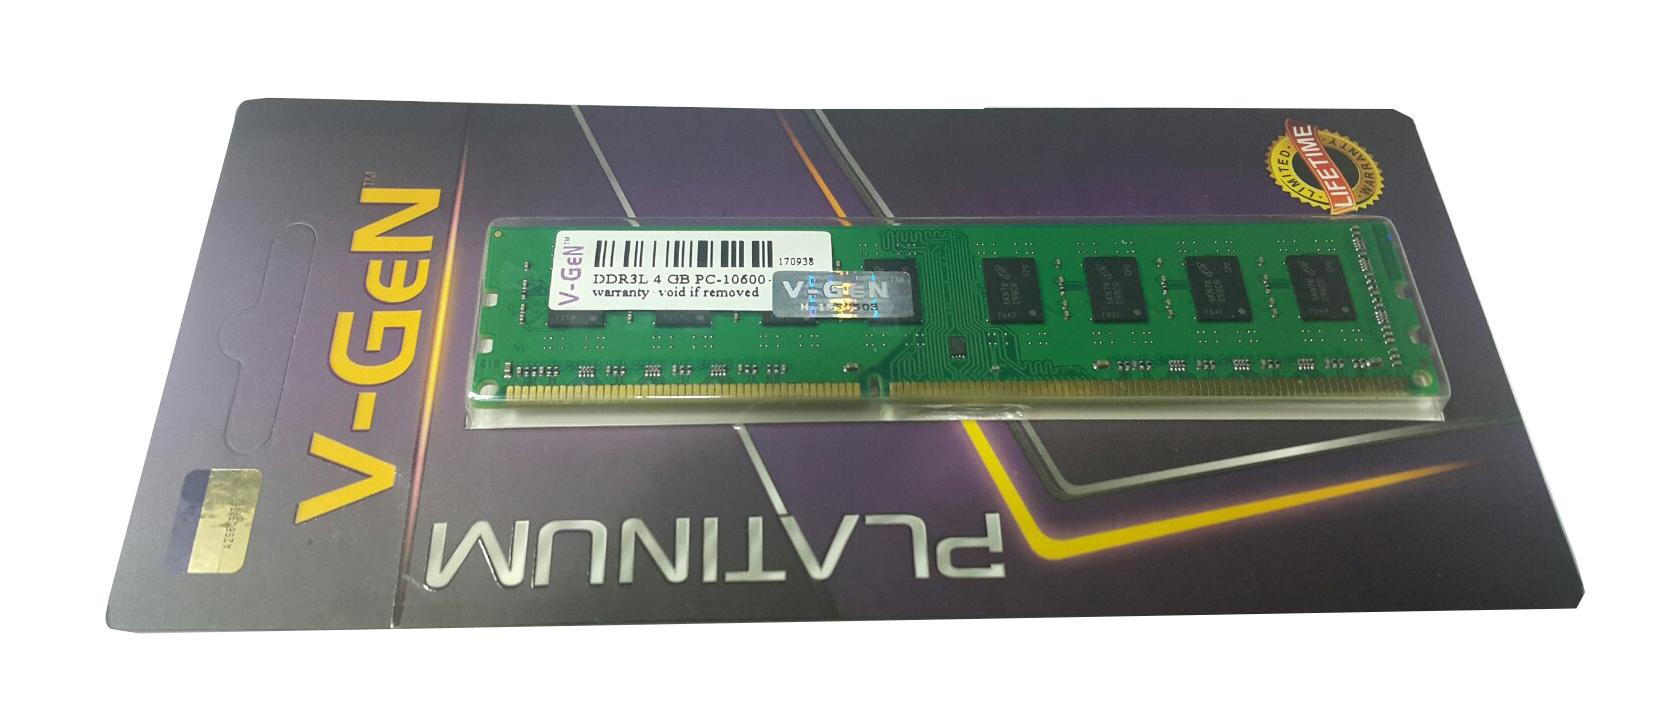 RAM DDR3 V-GeN 4GB PC10600/1333Mhz Long Dimm - Memory PC VGEN